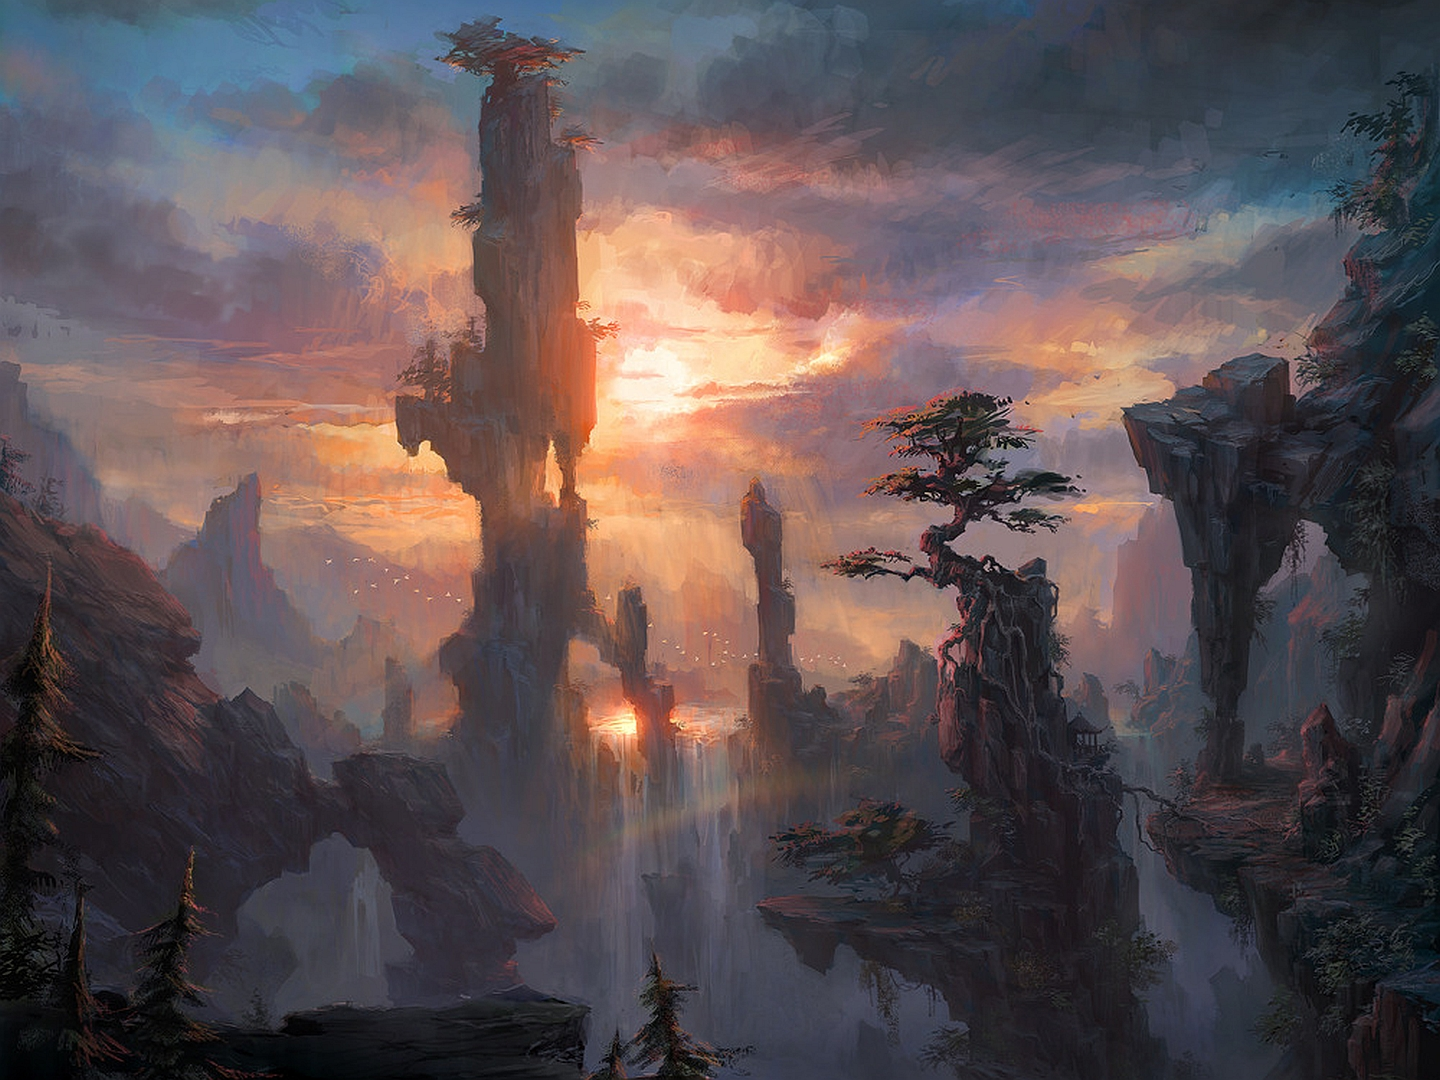 Fantasy Landscape HD Wallpapers, Pictures, Images